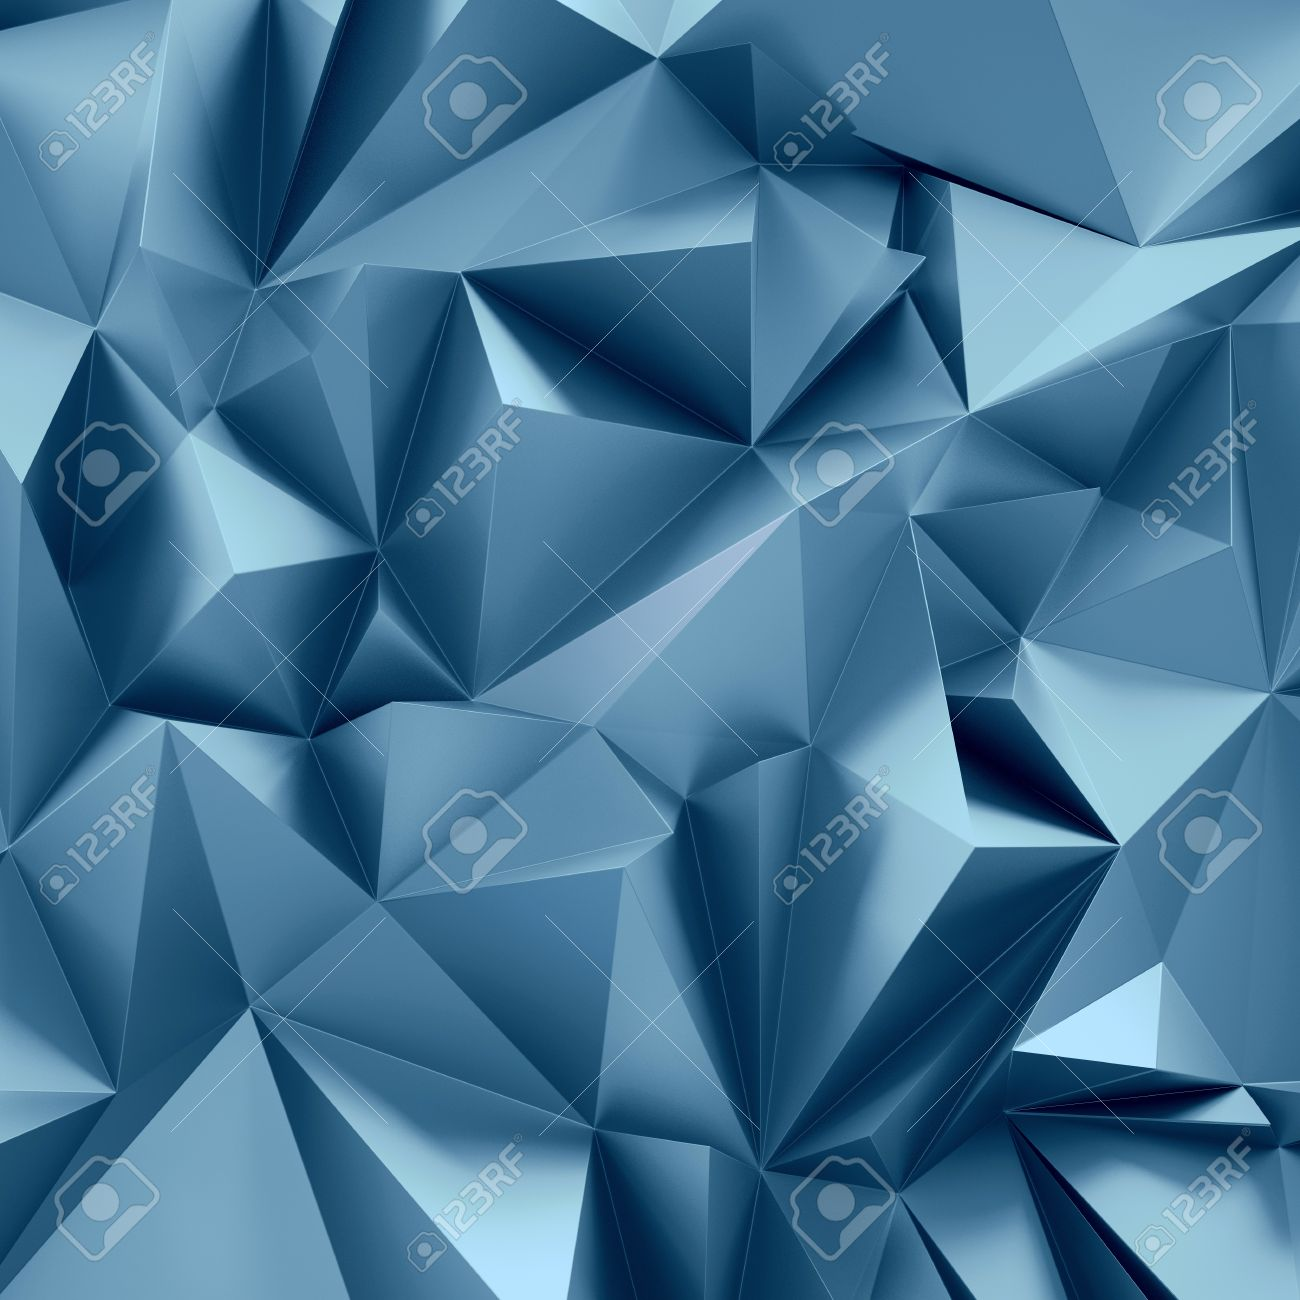 3d Abstract Crystal Background Metallic Geometrical Wallpaper Stock Photo